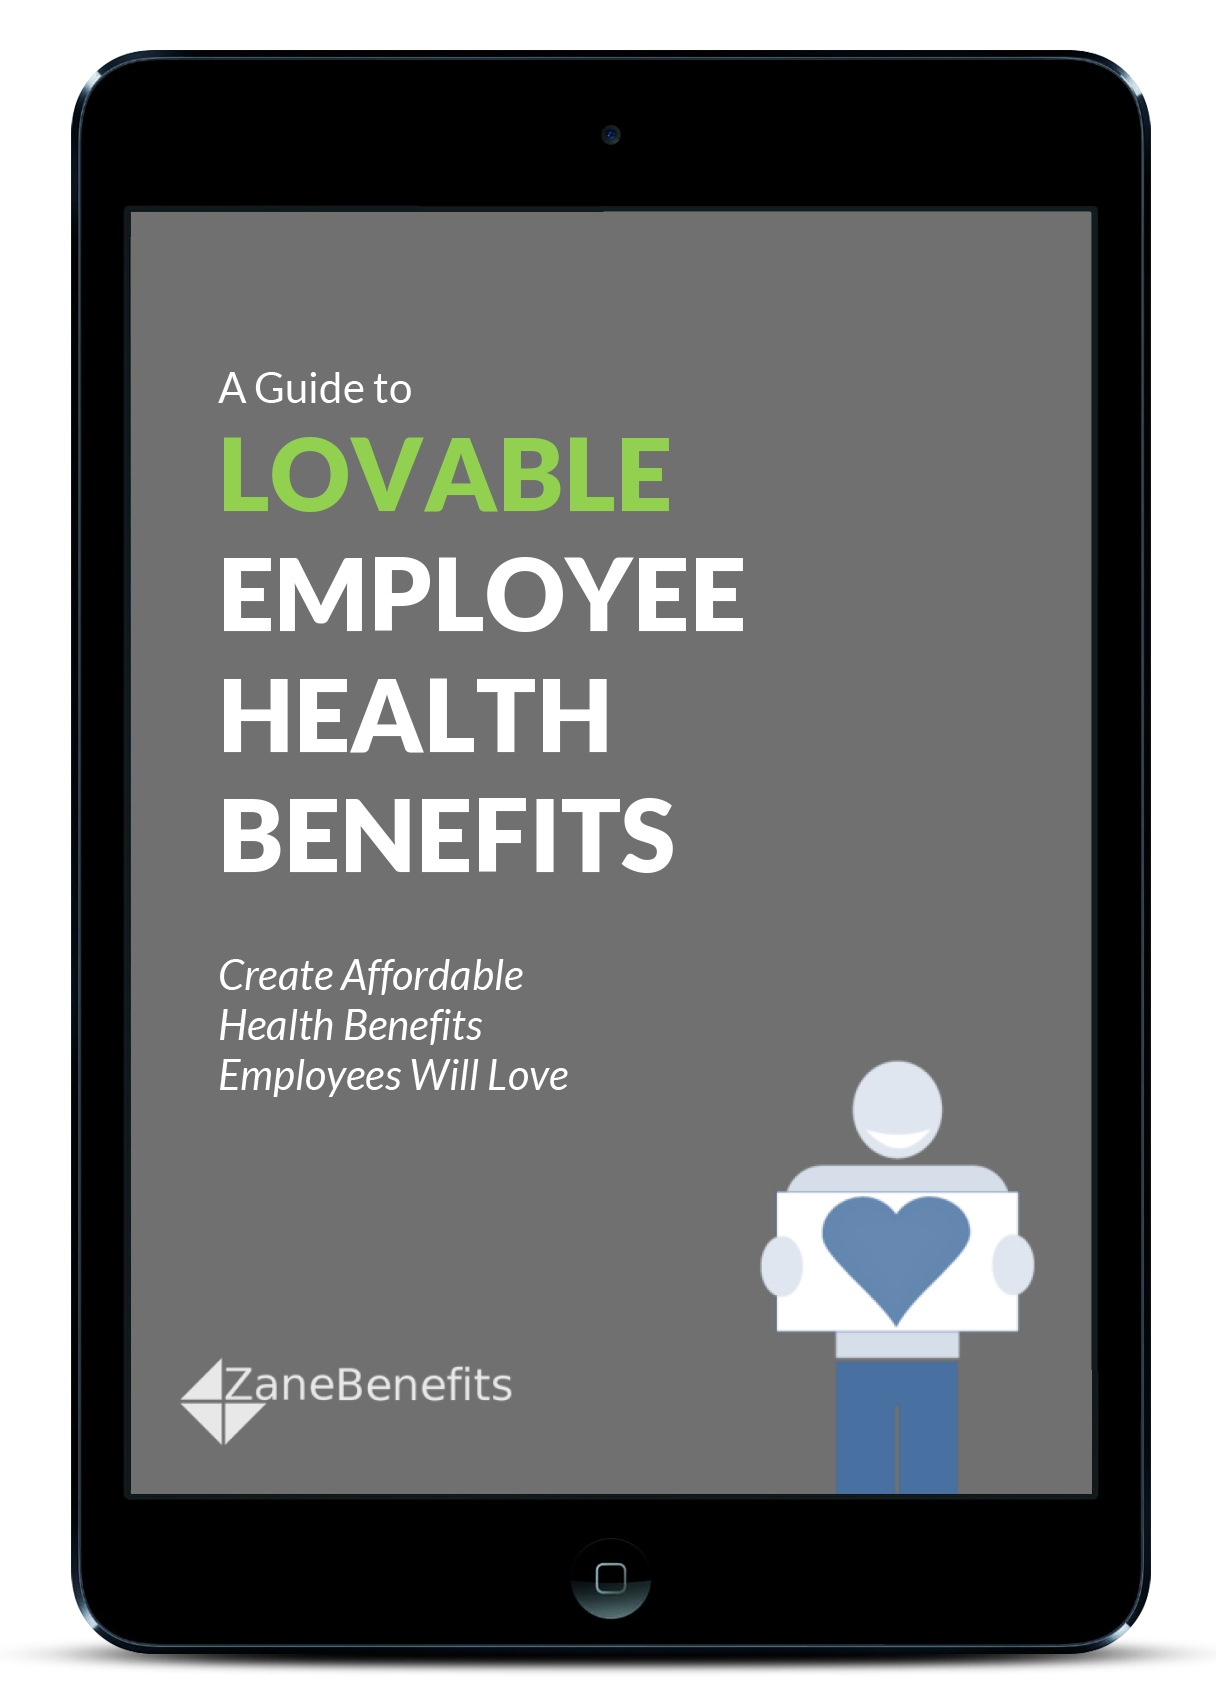 A Guide to Lovable Employee Health Benefits